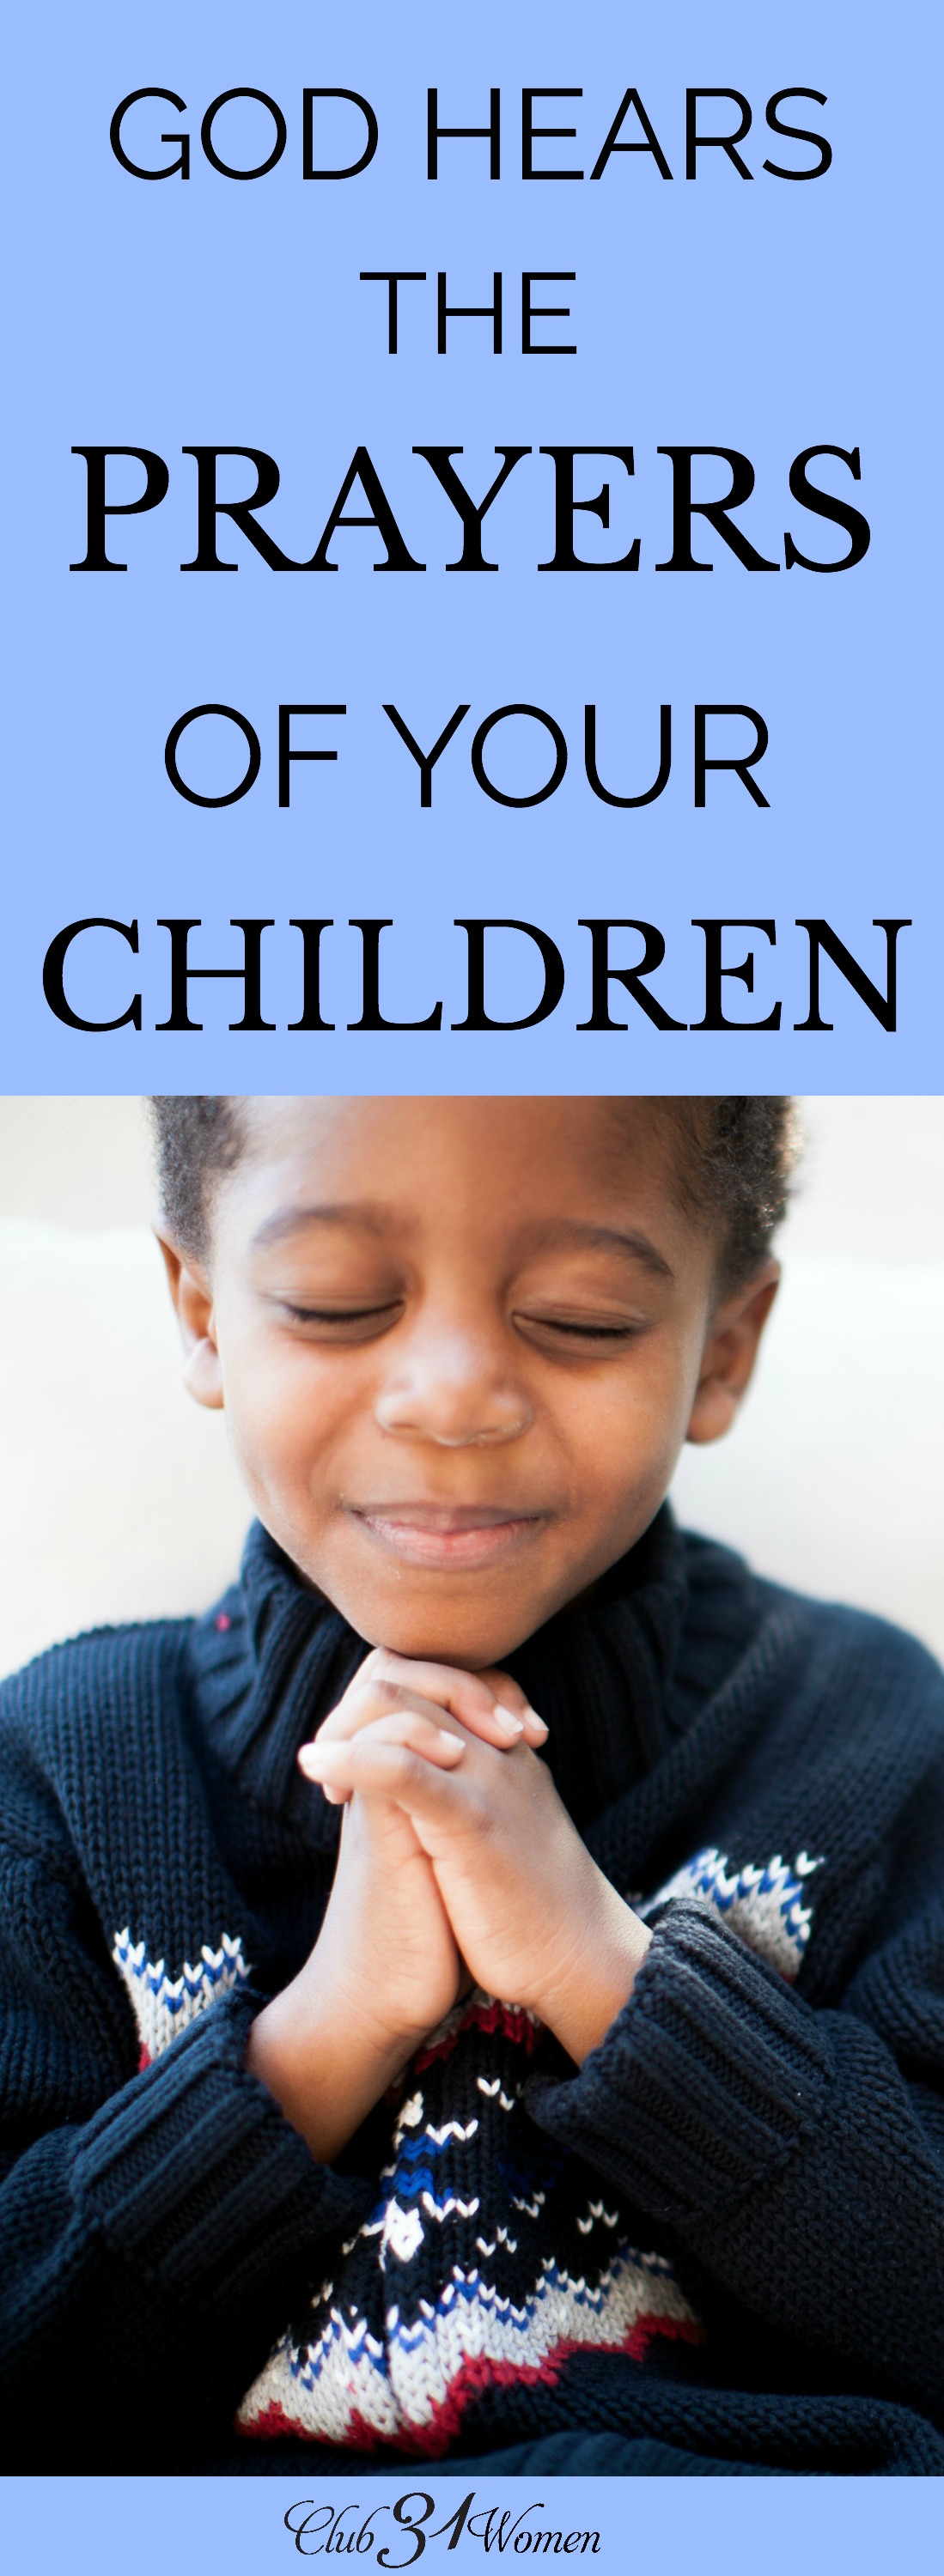 The prayers of your children do not go unheard - even if they seem small and insignificant to us, God wants your child to know Him. He will show Himself! via @Club31Women